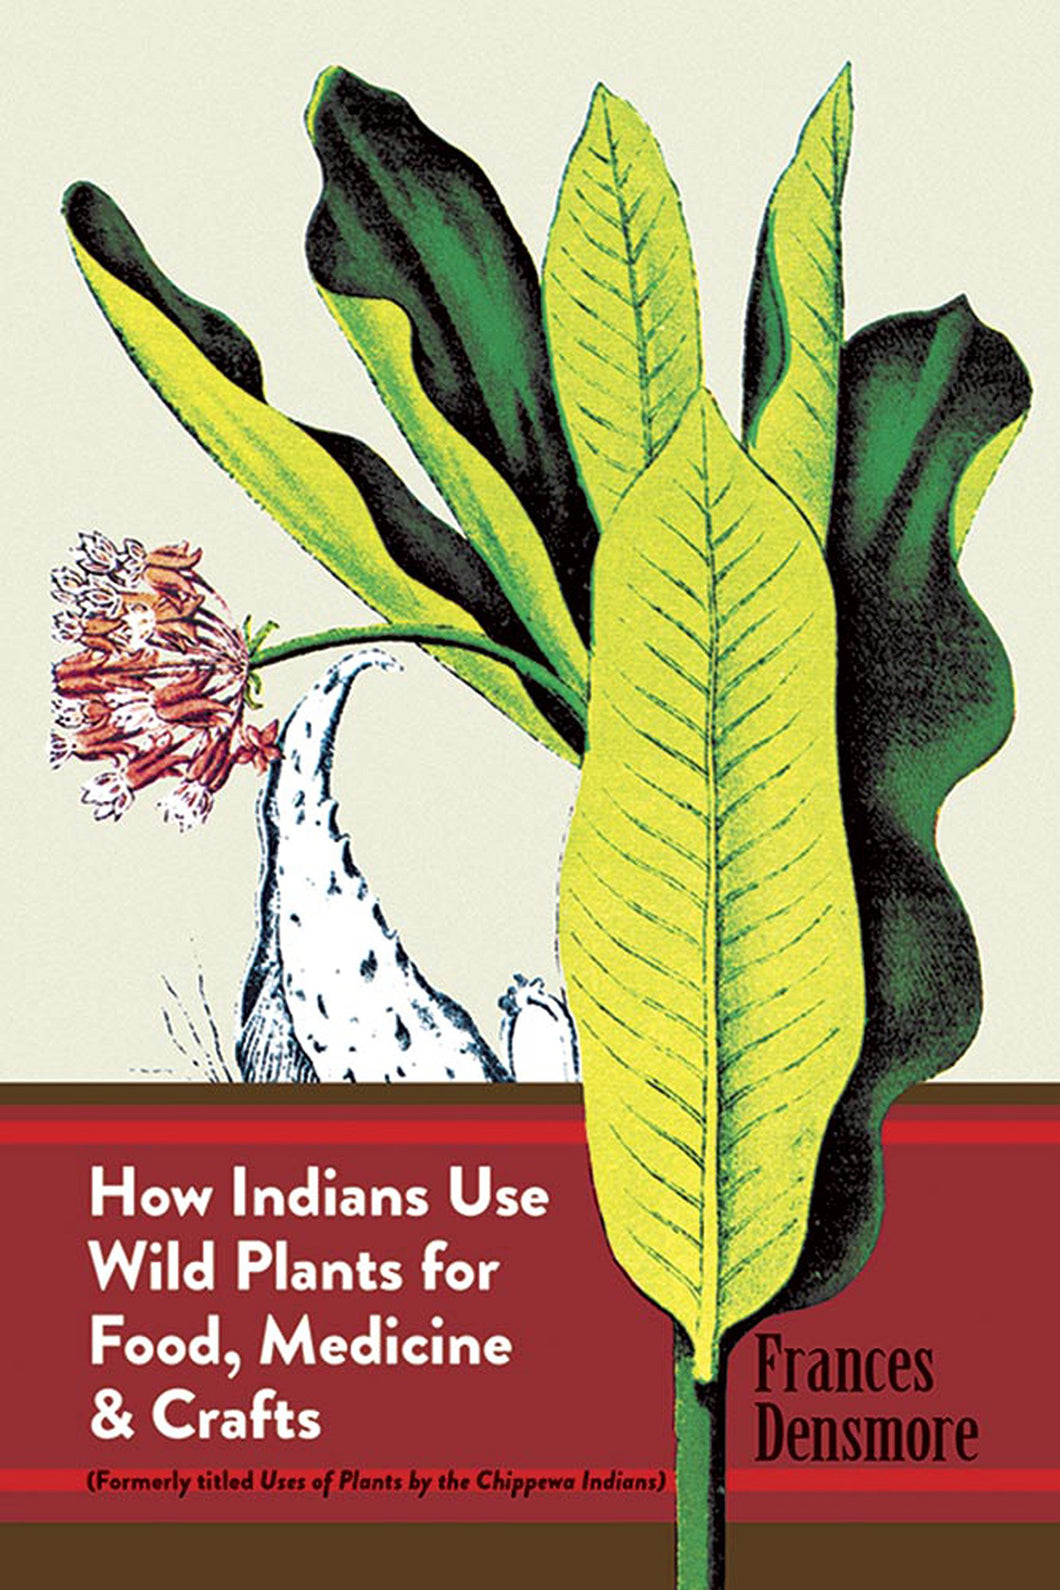 How Indians Use Wild Plants for Food, Medicine & Crafts [Frances Densmore]